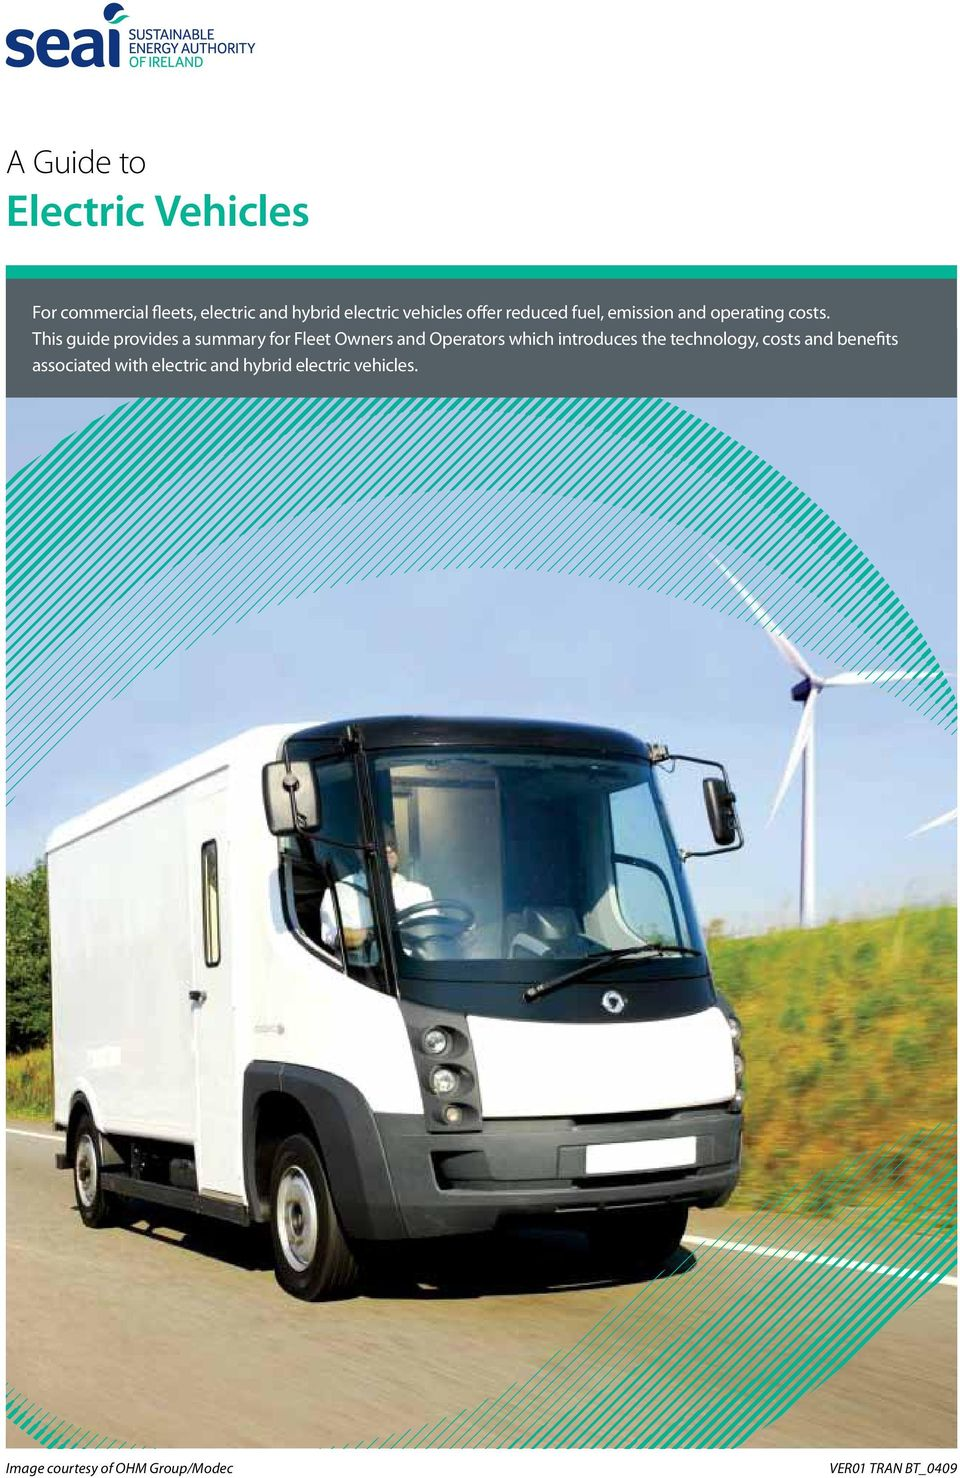 This guide provides a summary for Fleet Owners and Operators which introduces the